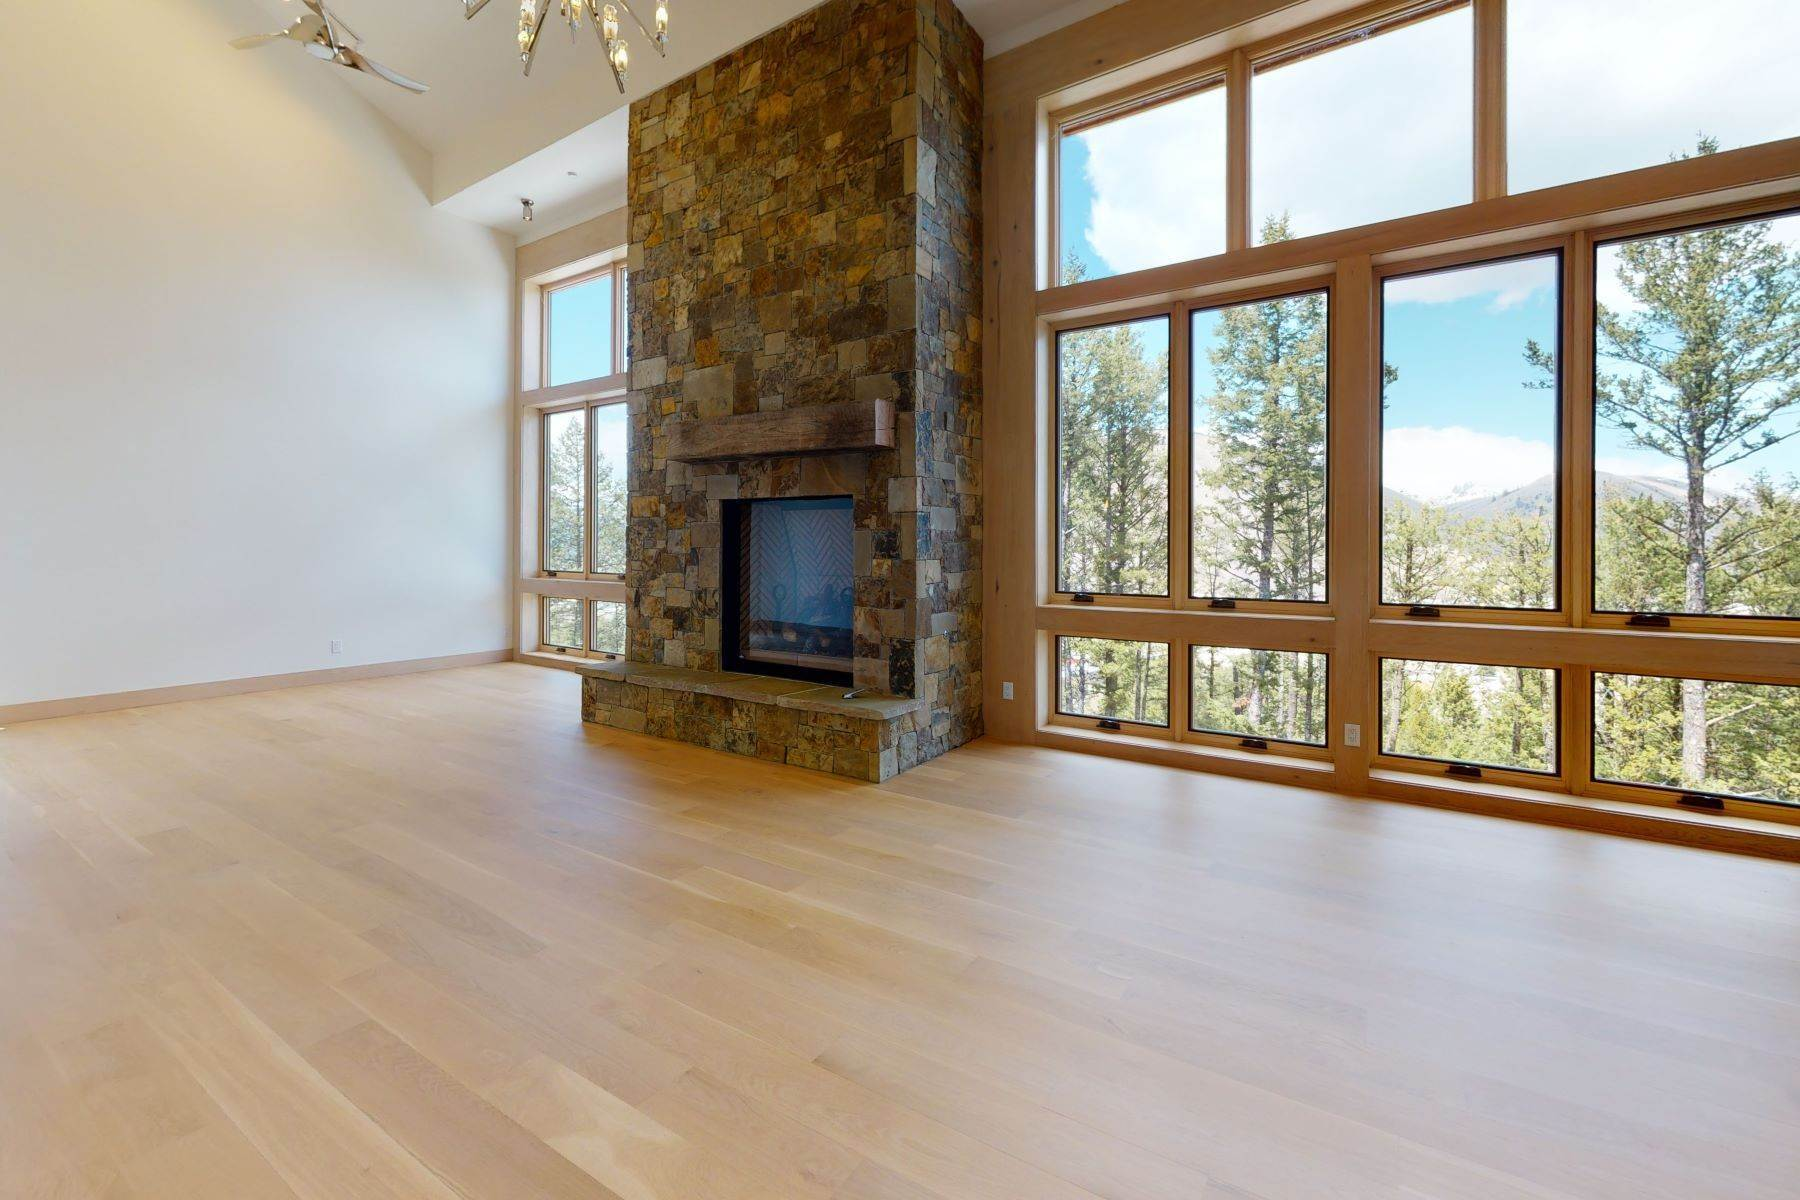 townhouses for Sale at Spectacular Pine Glades Townhouse 142 Pine Glades Drive Jackson, Wyoming 83001 United States